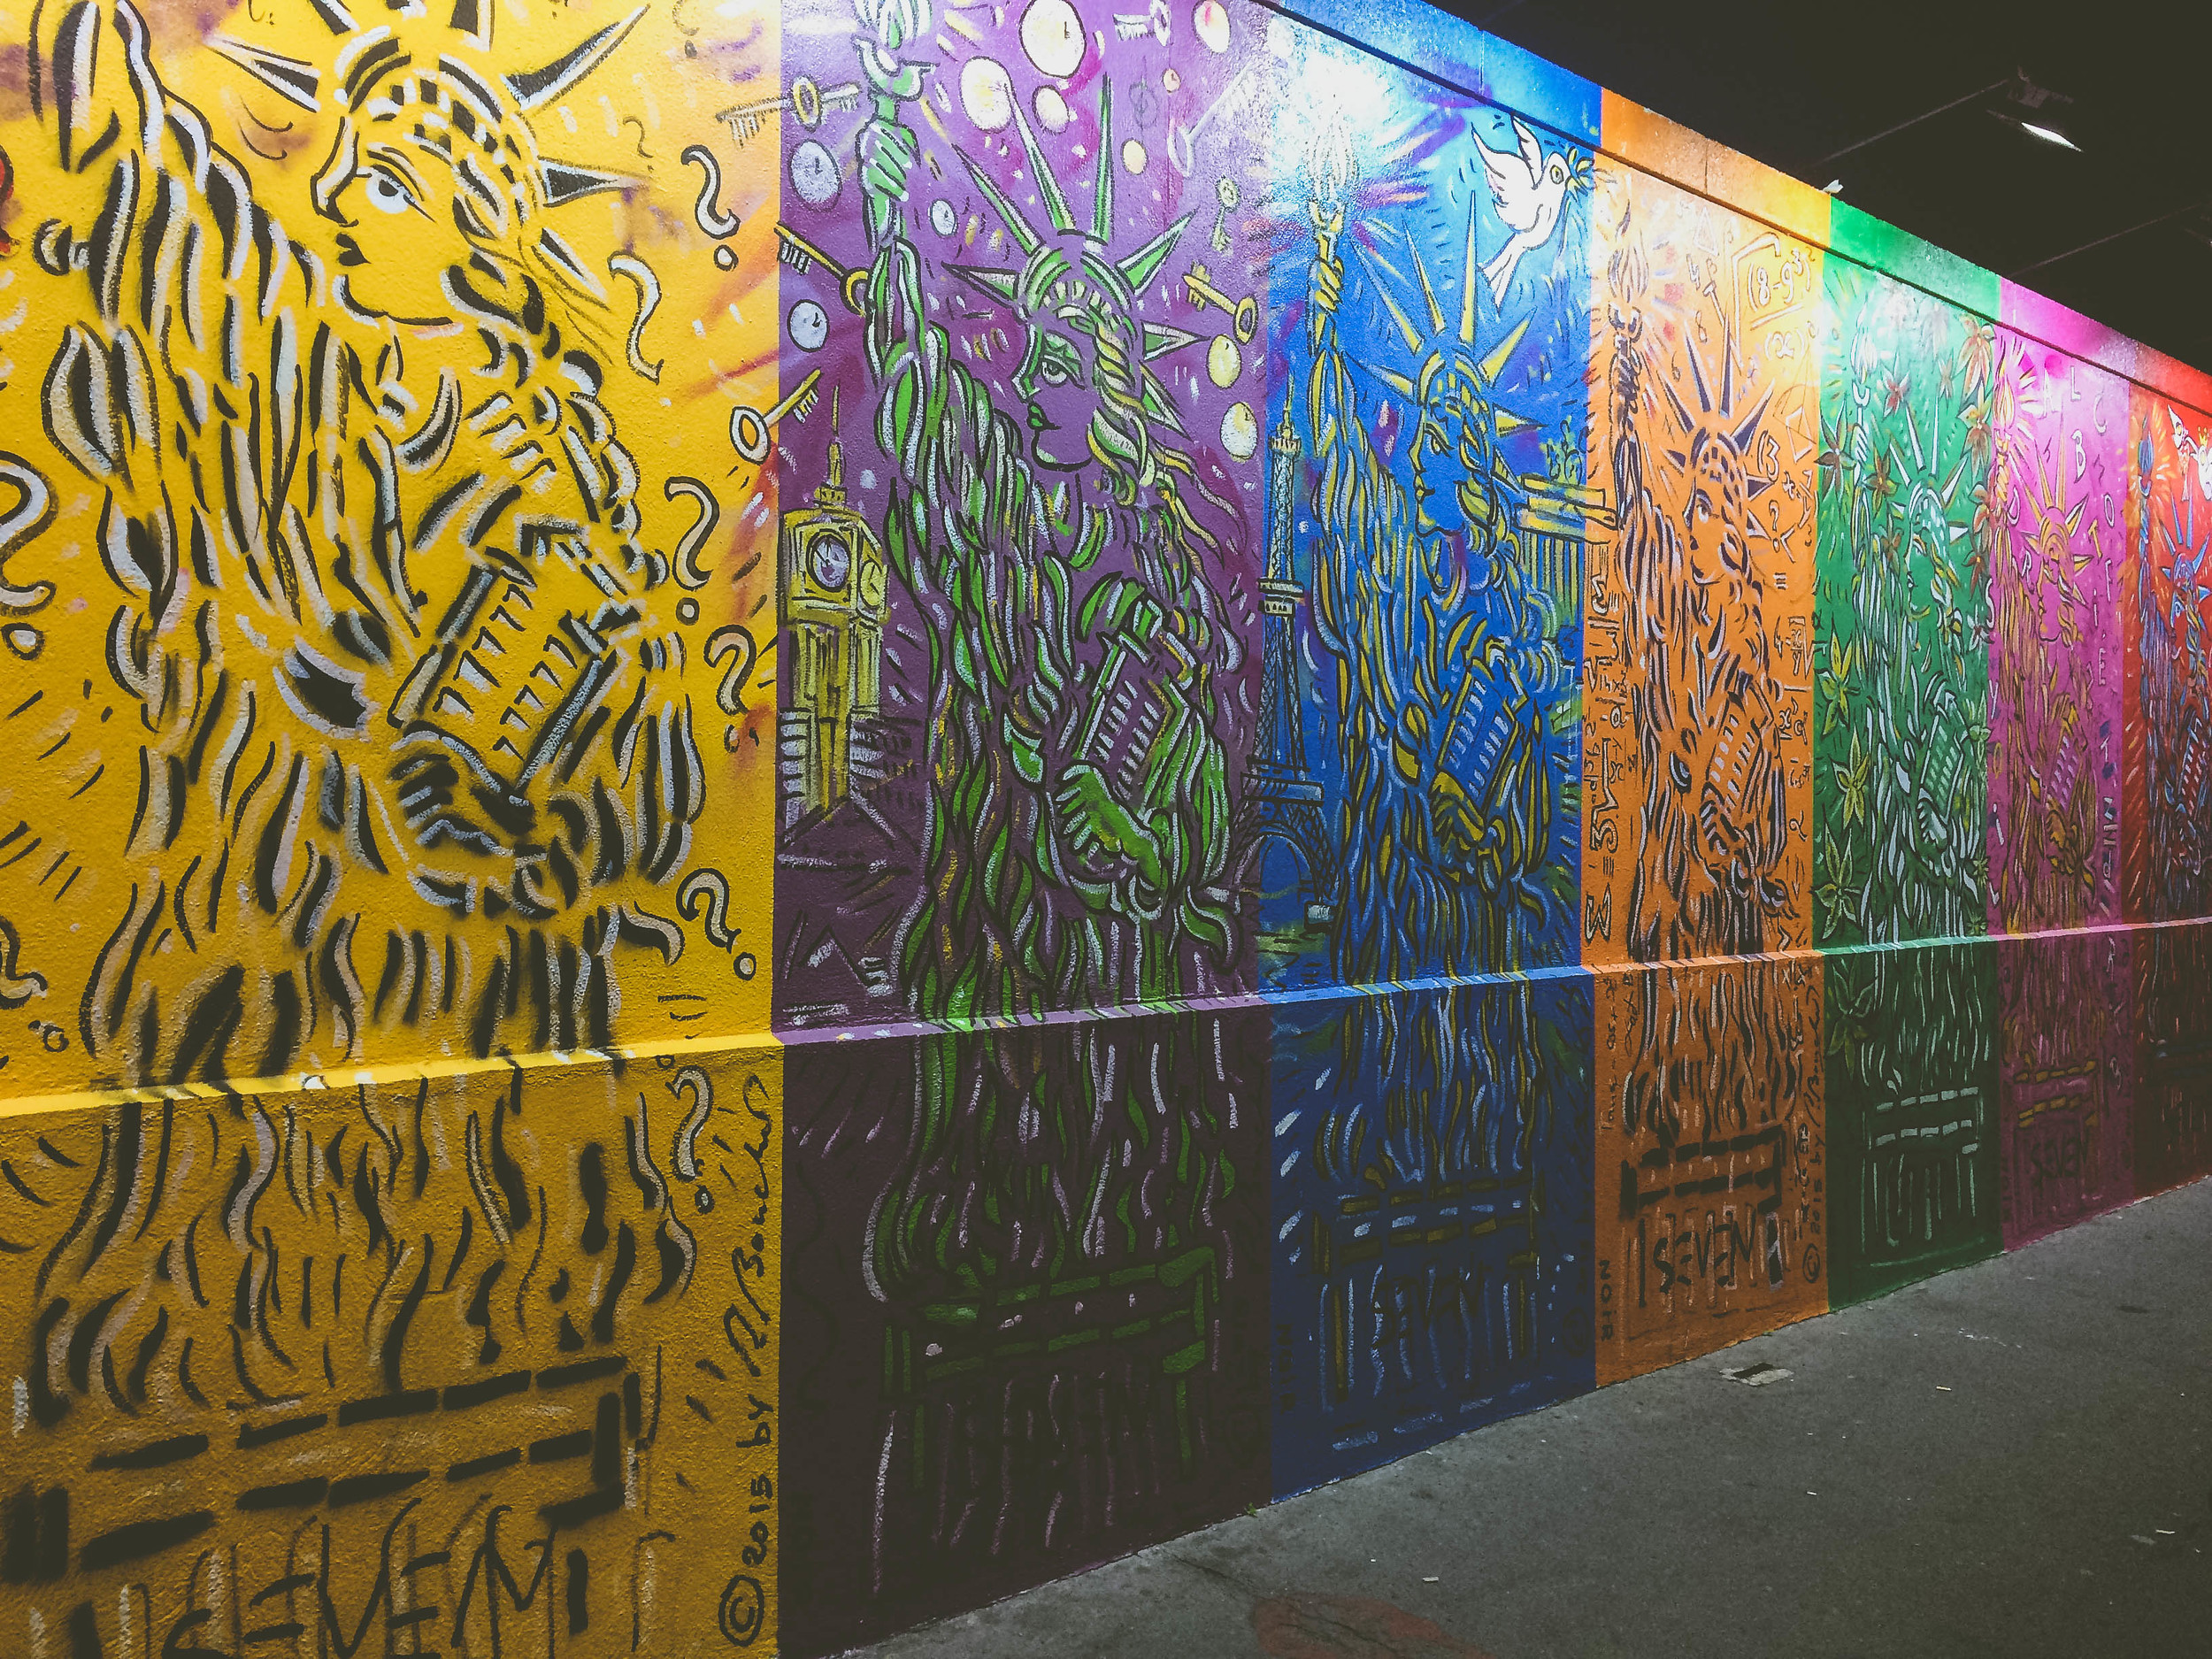 Nuit Blanche 2015: Statue of Liberty in many colorful panels.